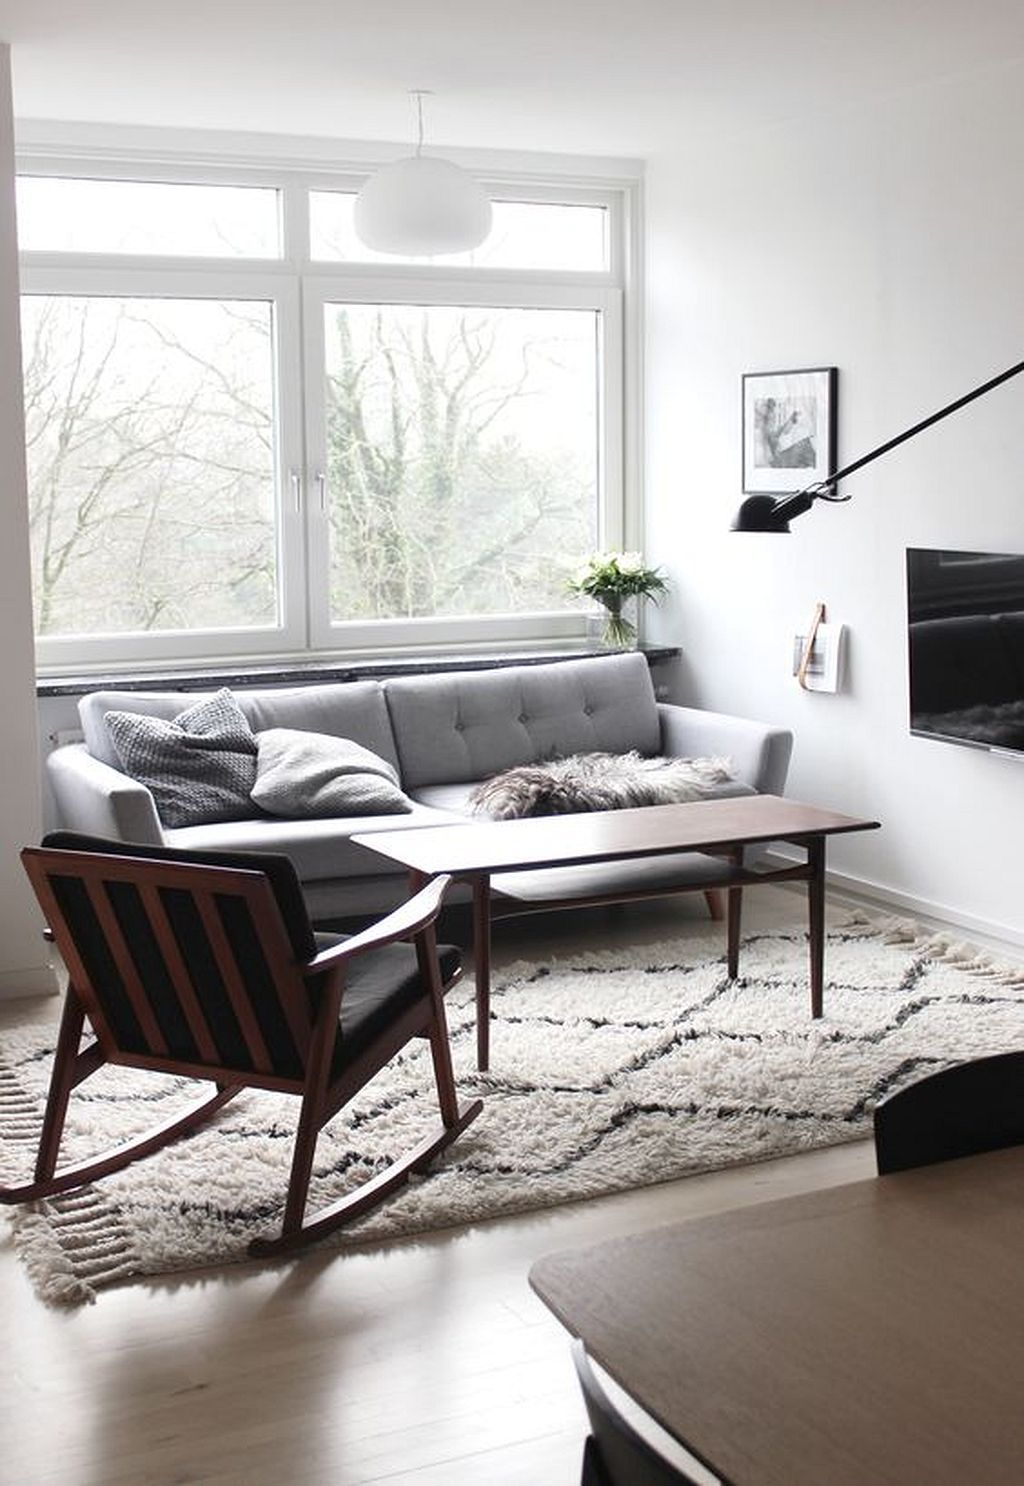 amazing 30 modern monochrome living room ideas living on amazing inspiring modern living room ideas for your home id=68982